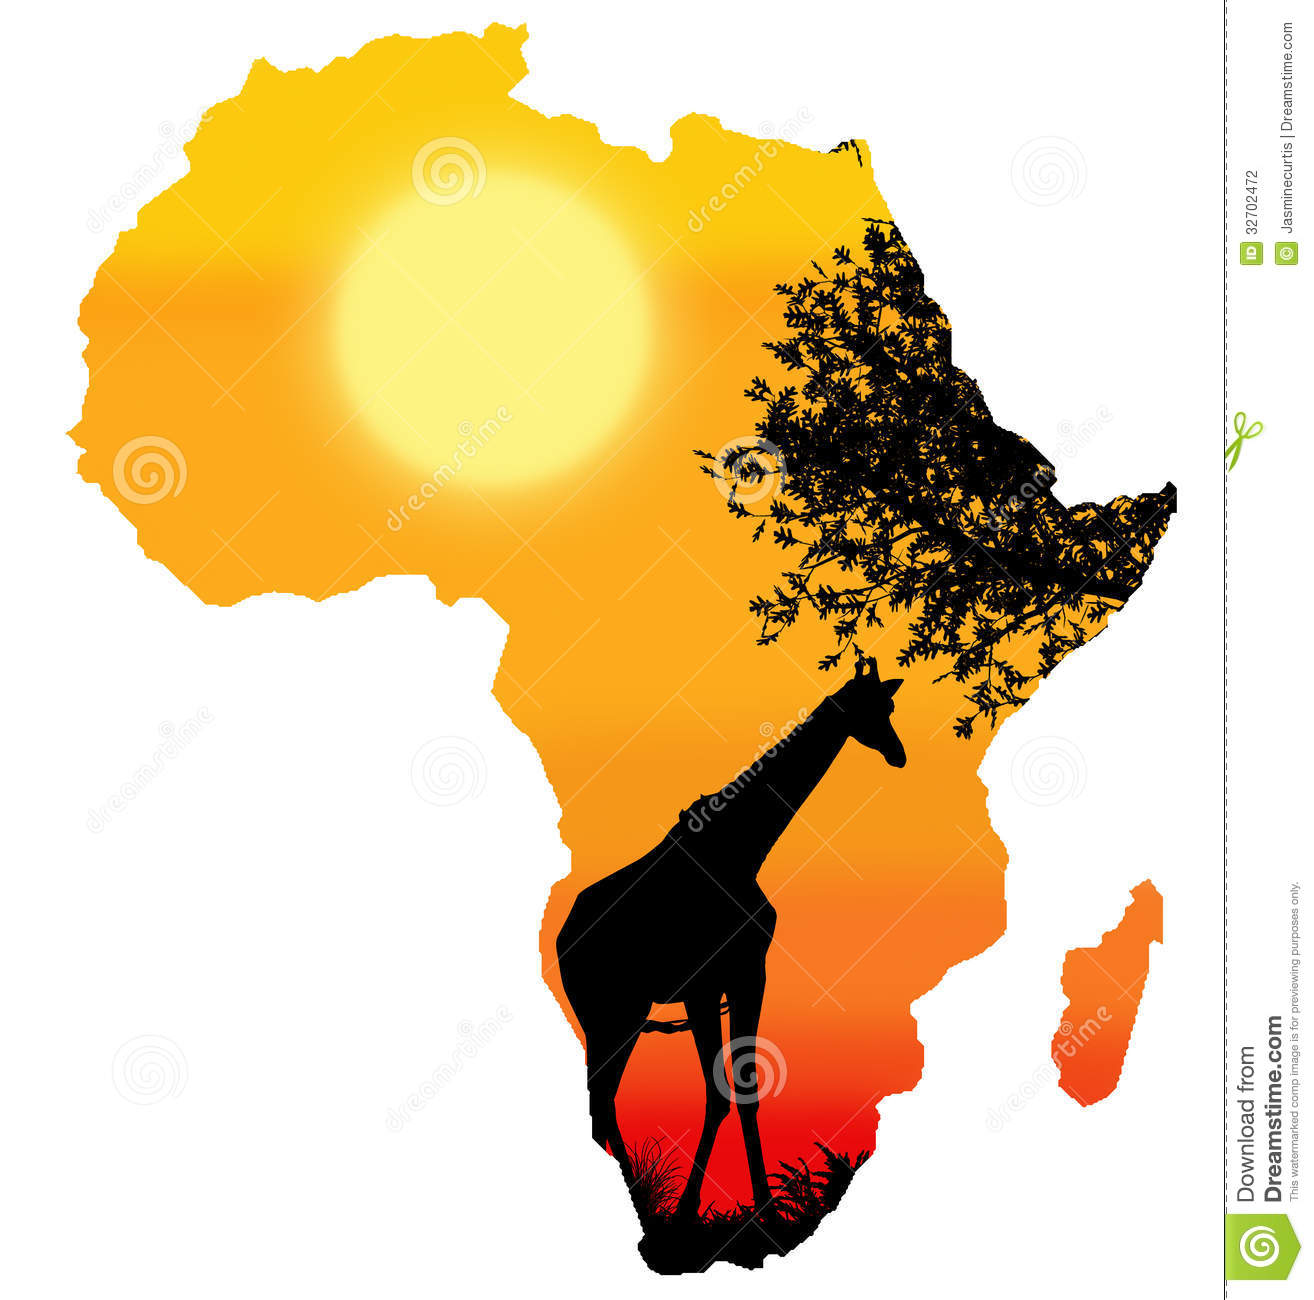 Africa clipart african safari To Africa's Canada Millennials to